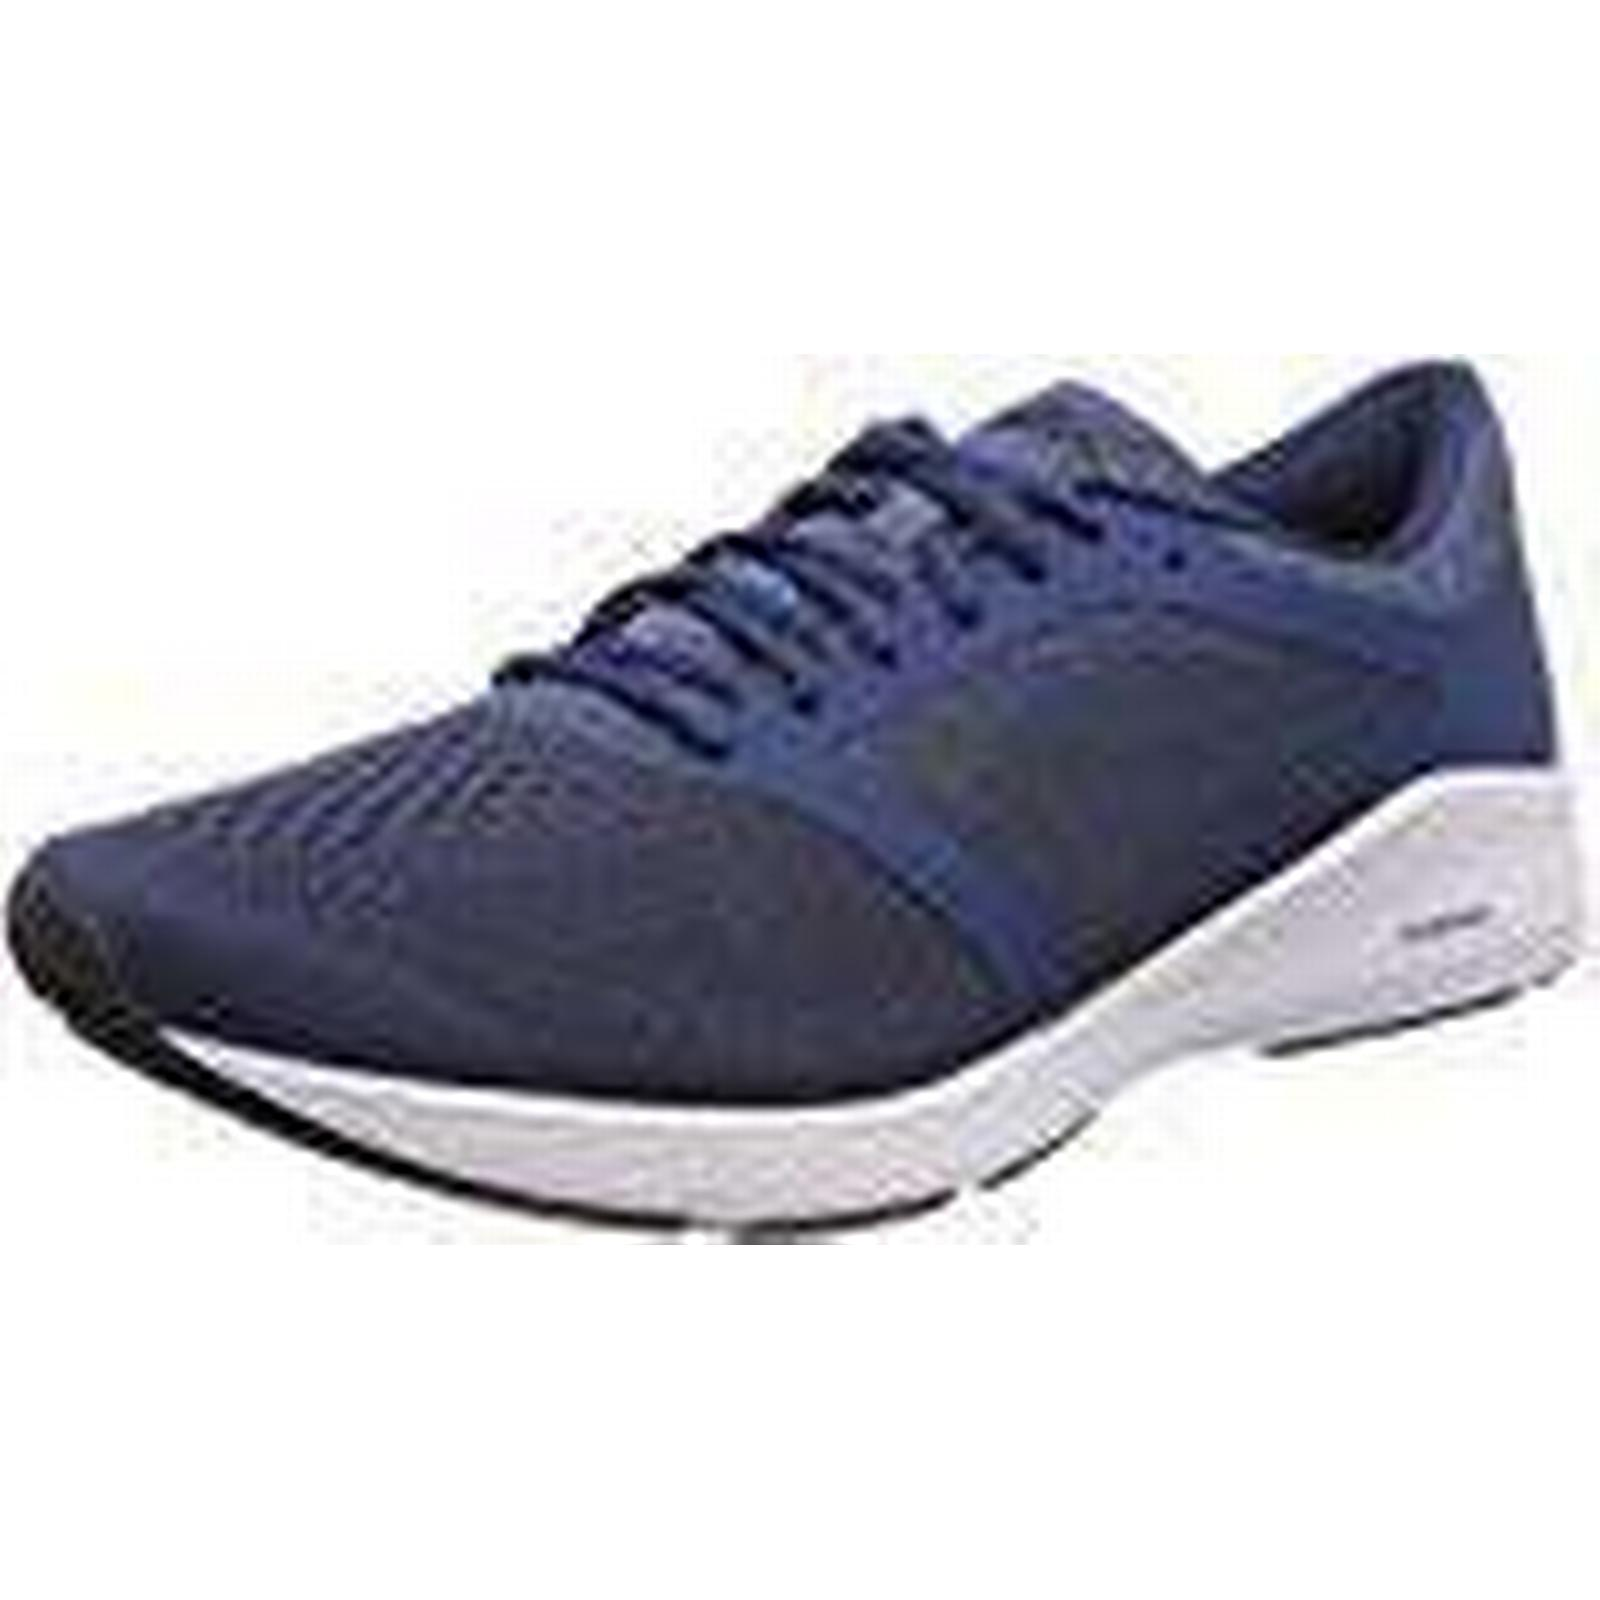 Asics Men's Roadhawk FF Running Shoes, Multicolour (Dark 9.5 Blue/Black/White 4990), 9.5 UK 9.5 (Dark UK 88f4ae